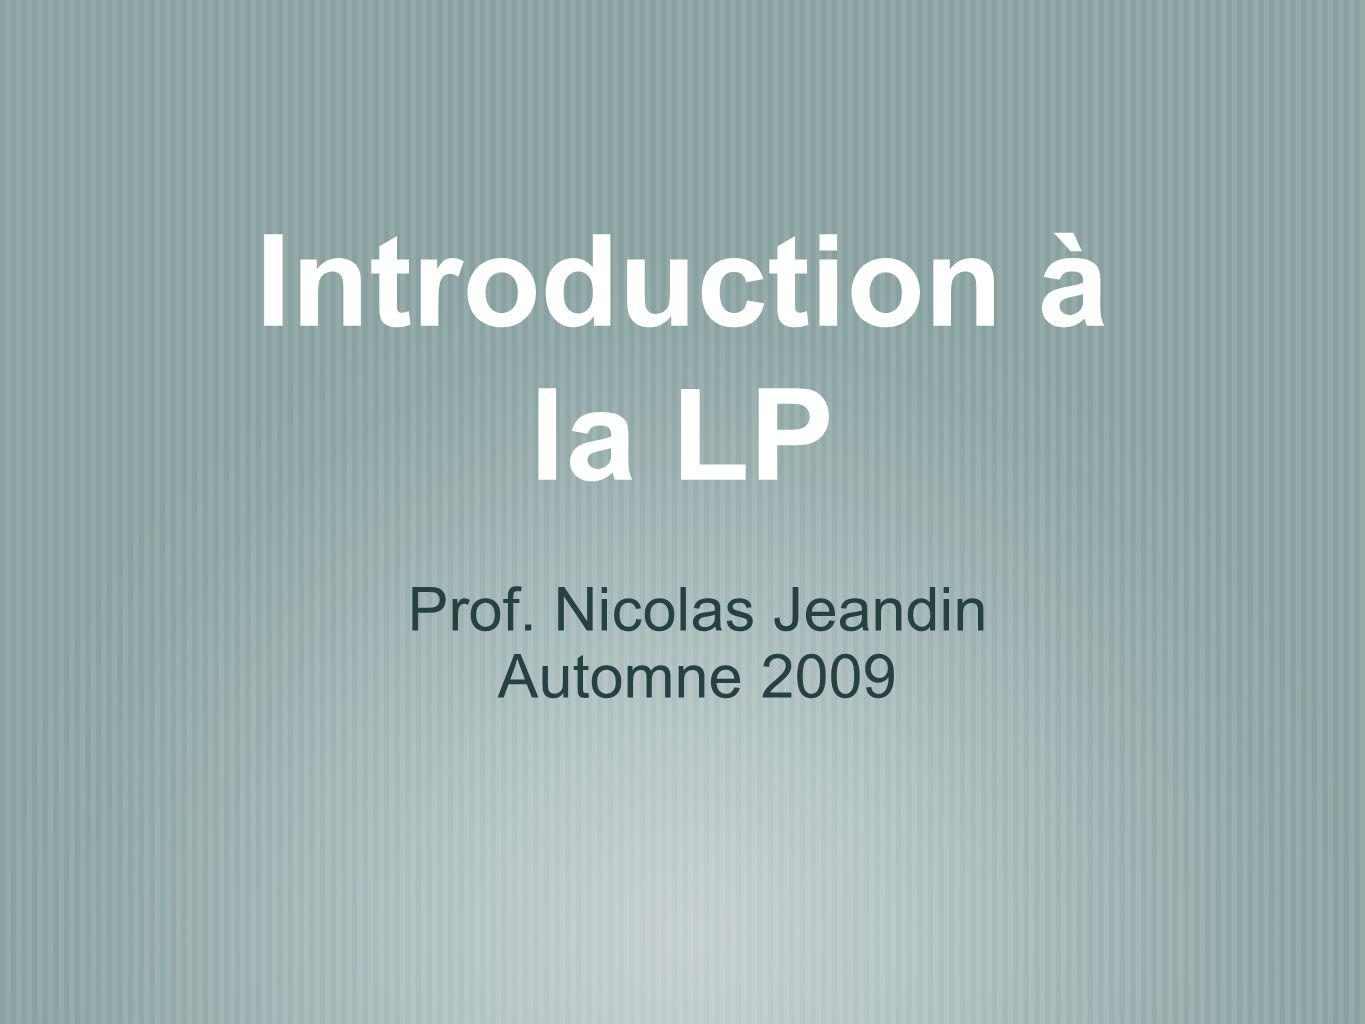 Introduction à la LP Prof. Nicolas Jeandin Automne 2009